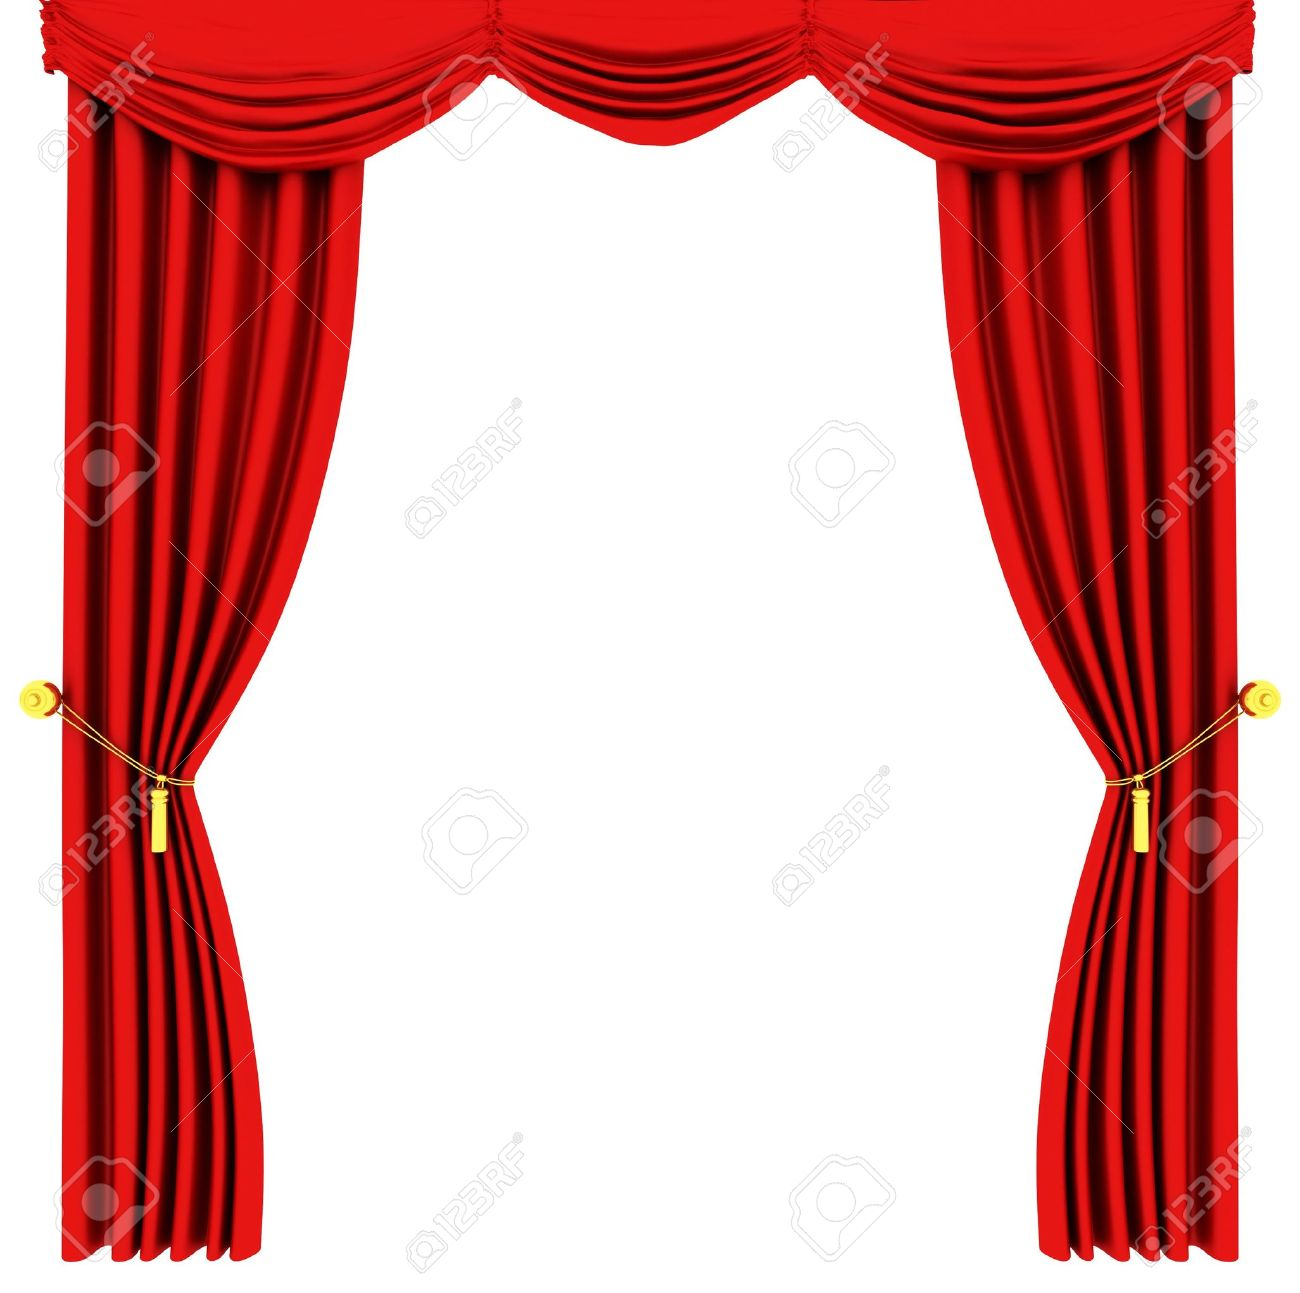 Red stage curtain with lights - Stage Curtain Background Stage Curtain Design Curtain Theatre Up Red Theater Curtain Isolated On White